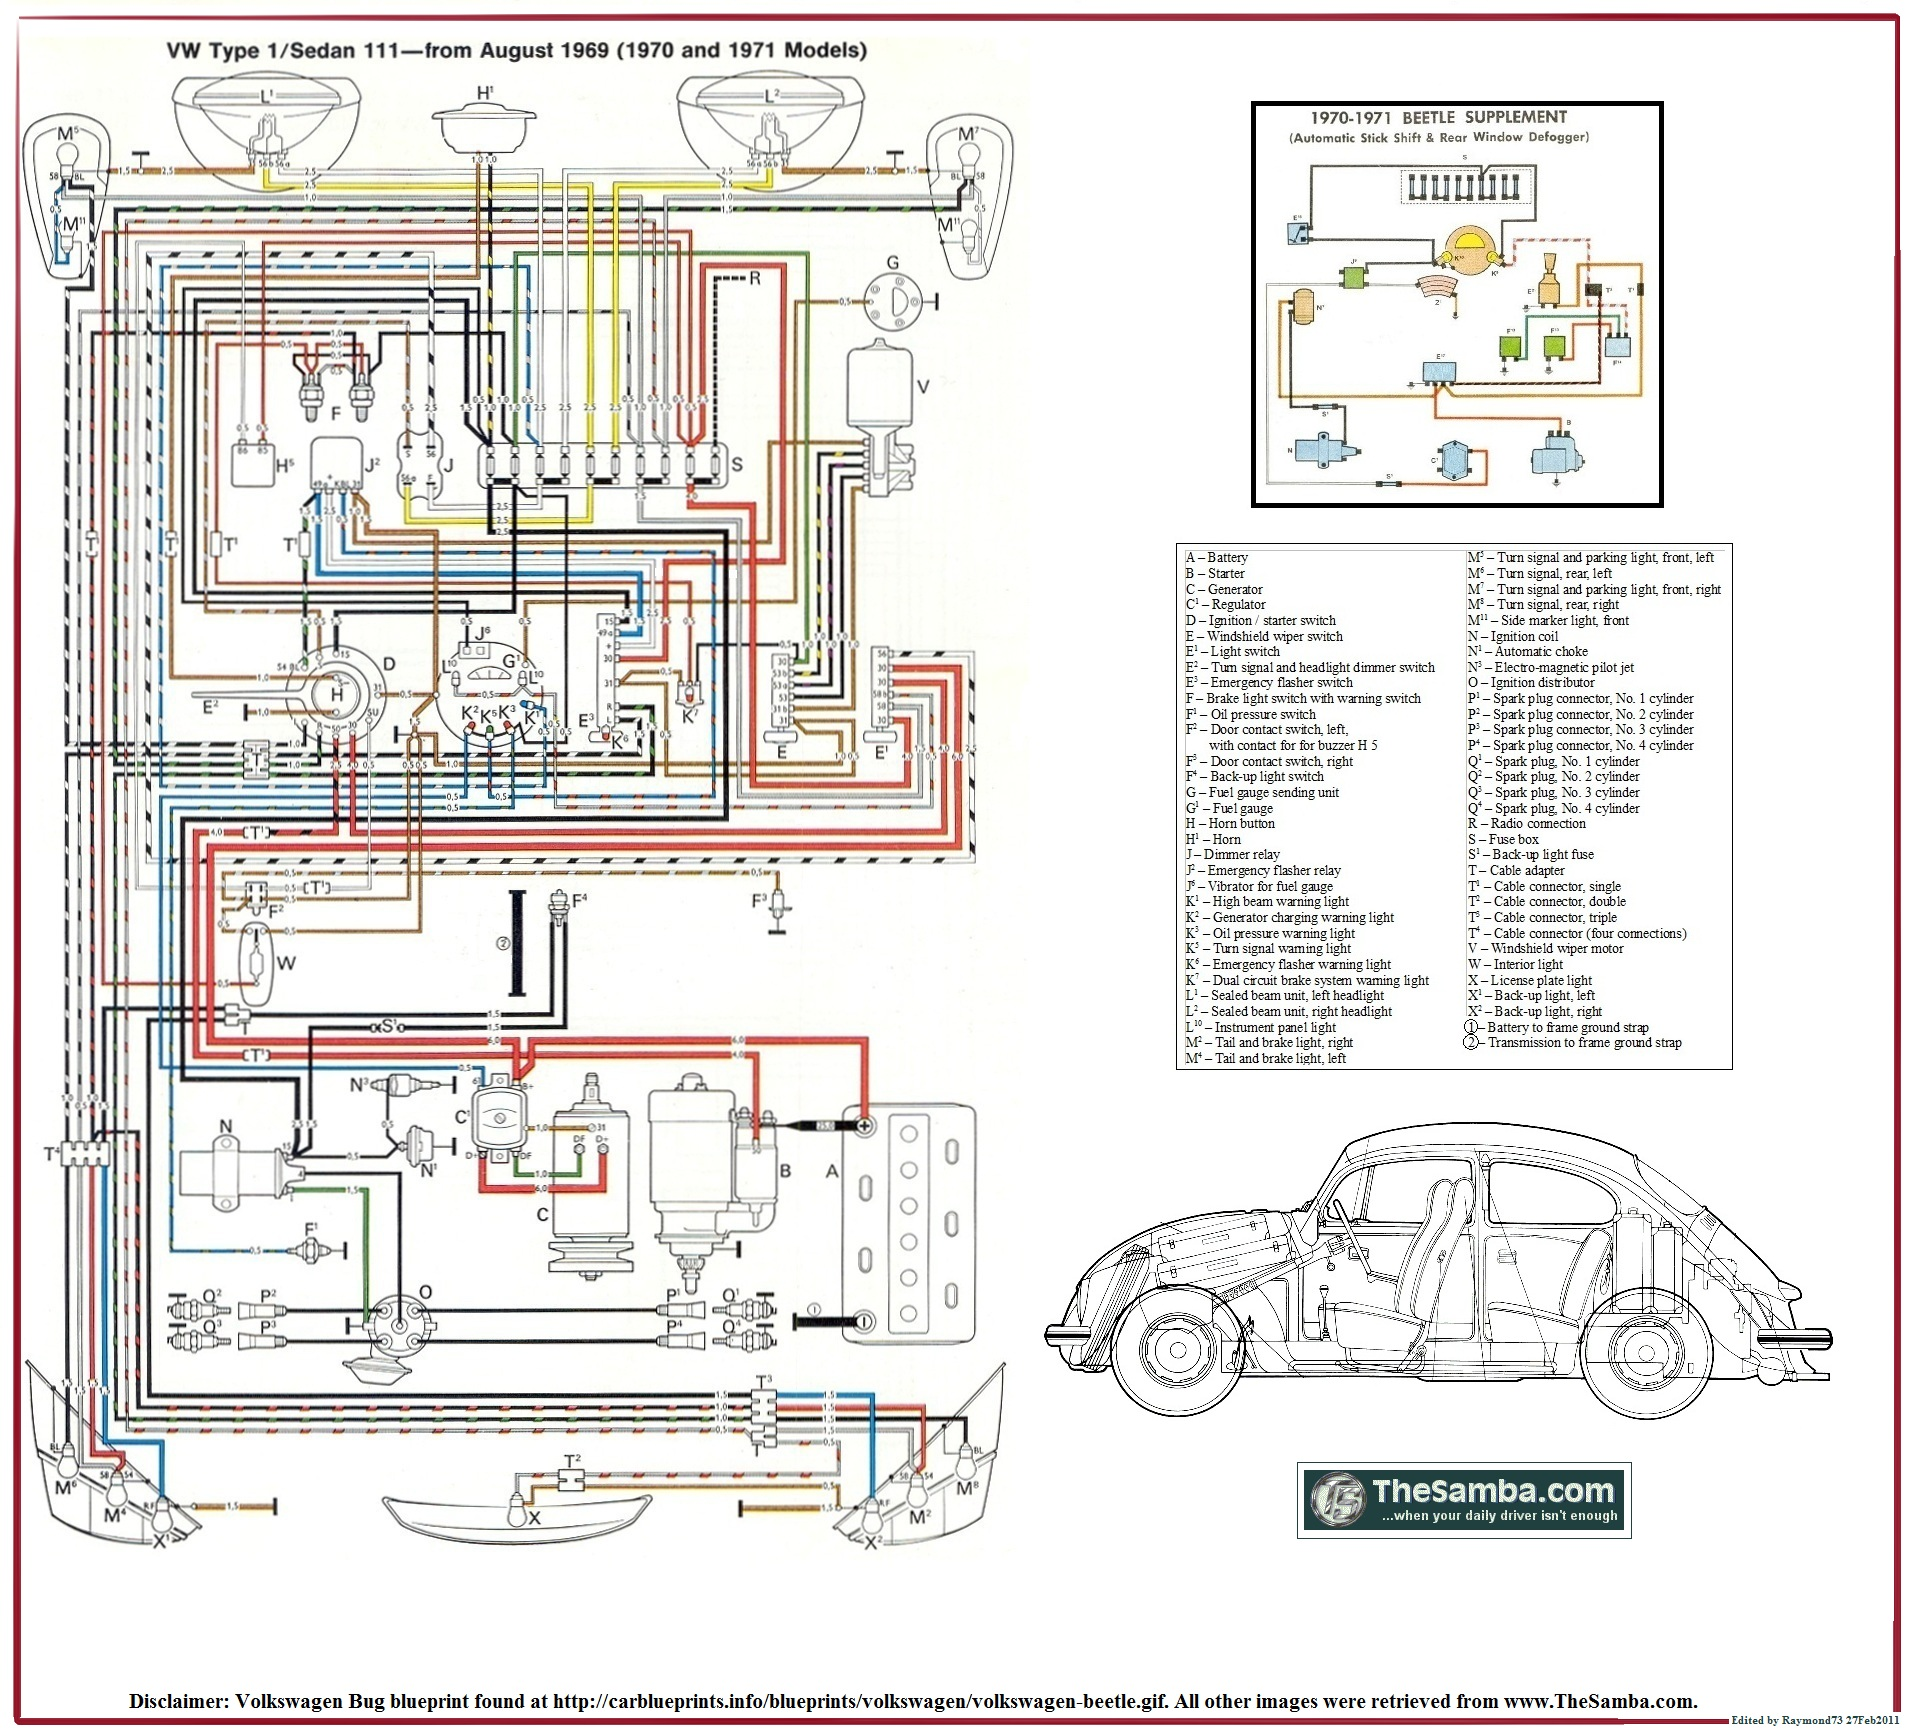 1970 vw engine wiring diy wiring diagrams u2022 rh dancesalsa co Volkswagen 2002 Beetle Wiring Diagram 1973 VW Beetle Wiring Diagram